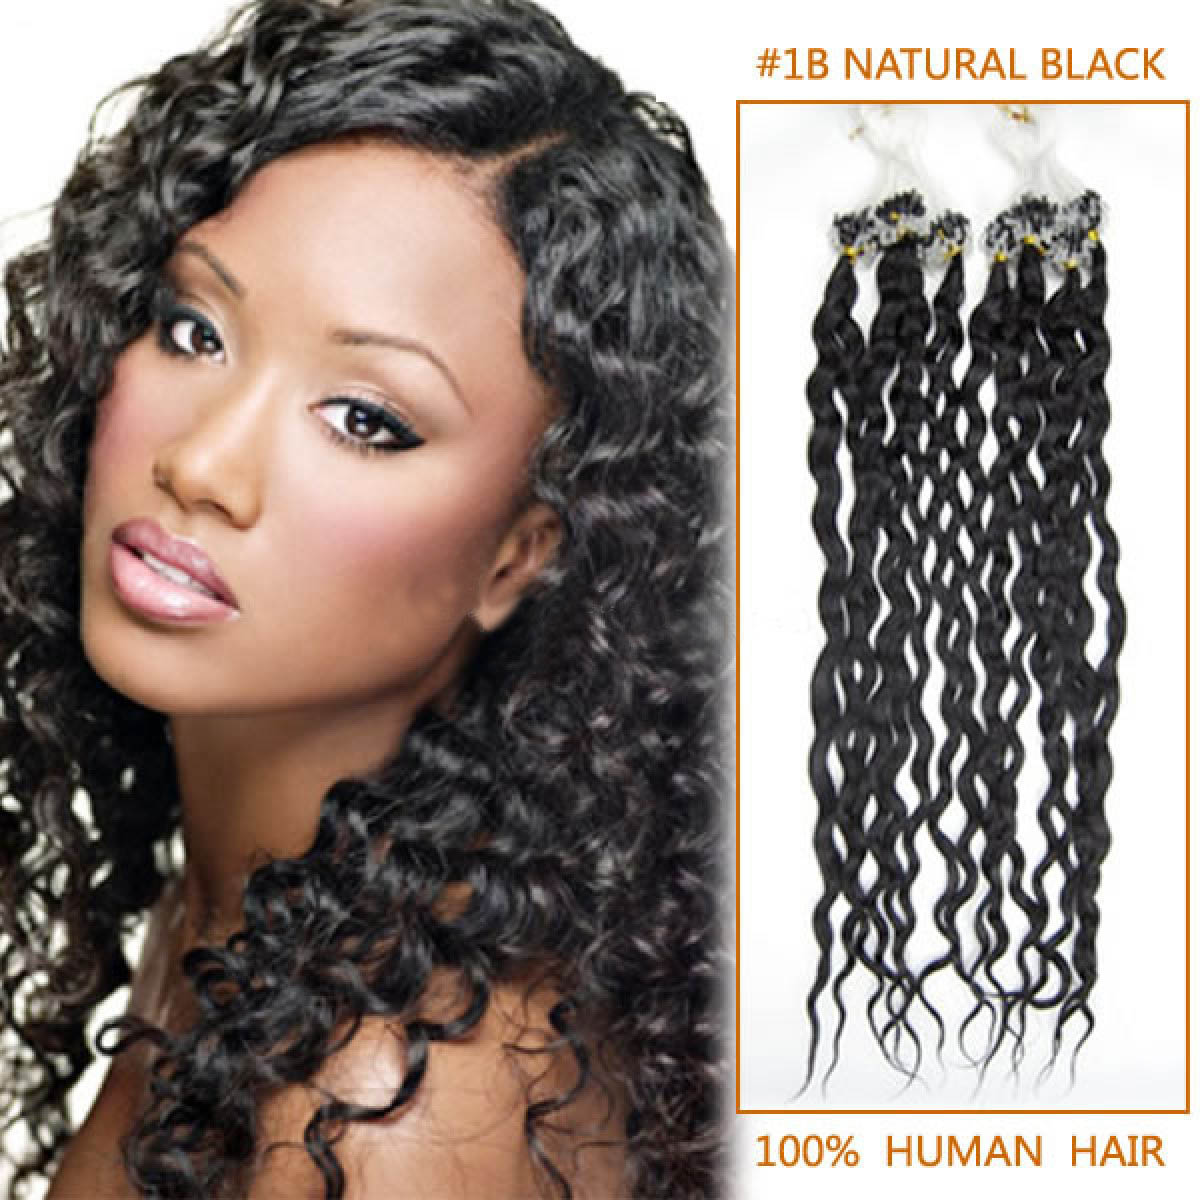 Inch sophisticated 1b natural black curly micro loop hair 22 inch sophisticated 1b natural black curly micro loop hair extensions 100 strands pmusecretfo Choice Image